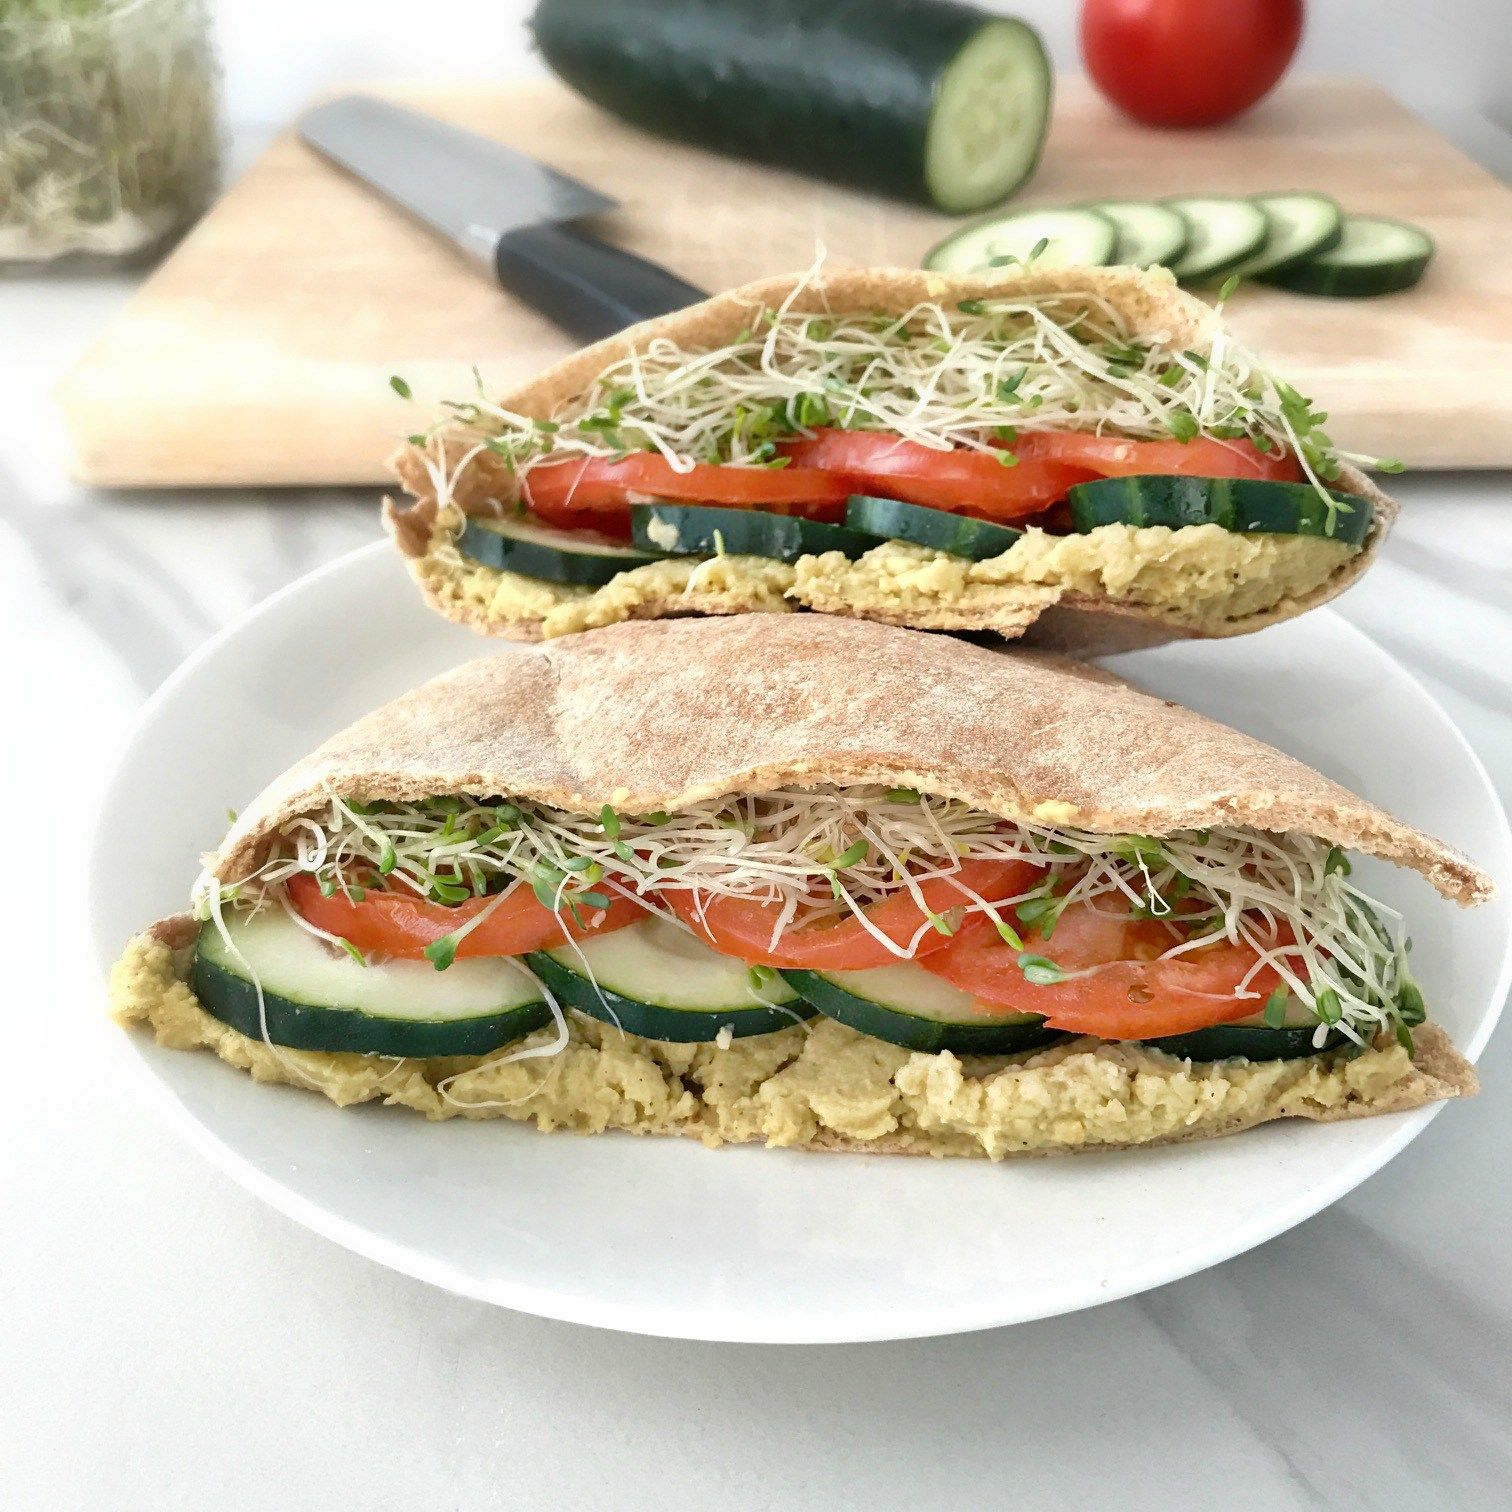 Veggie Pita Sandwiches With Avocado Hummus Your Choice Nutrition Recipe Healthy Pita Recipes Avocado Hummus Recipe Pita Sandwiches